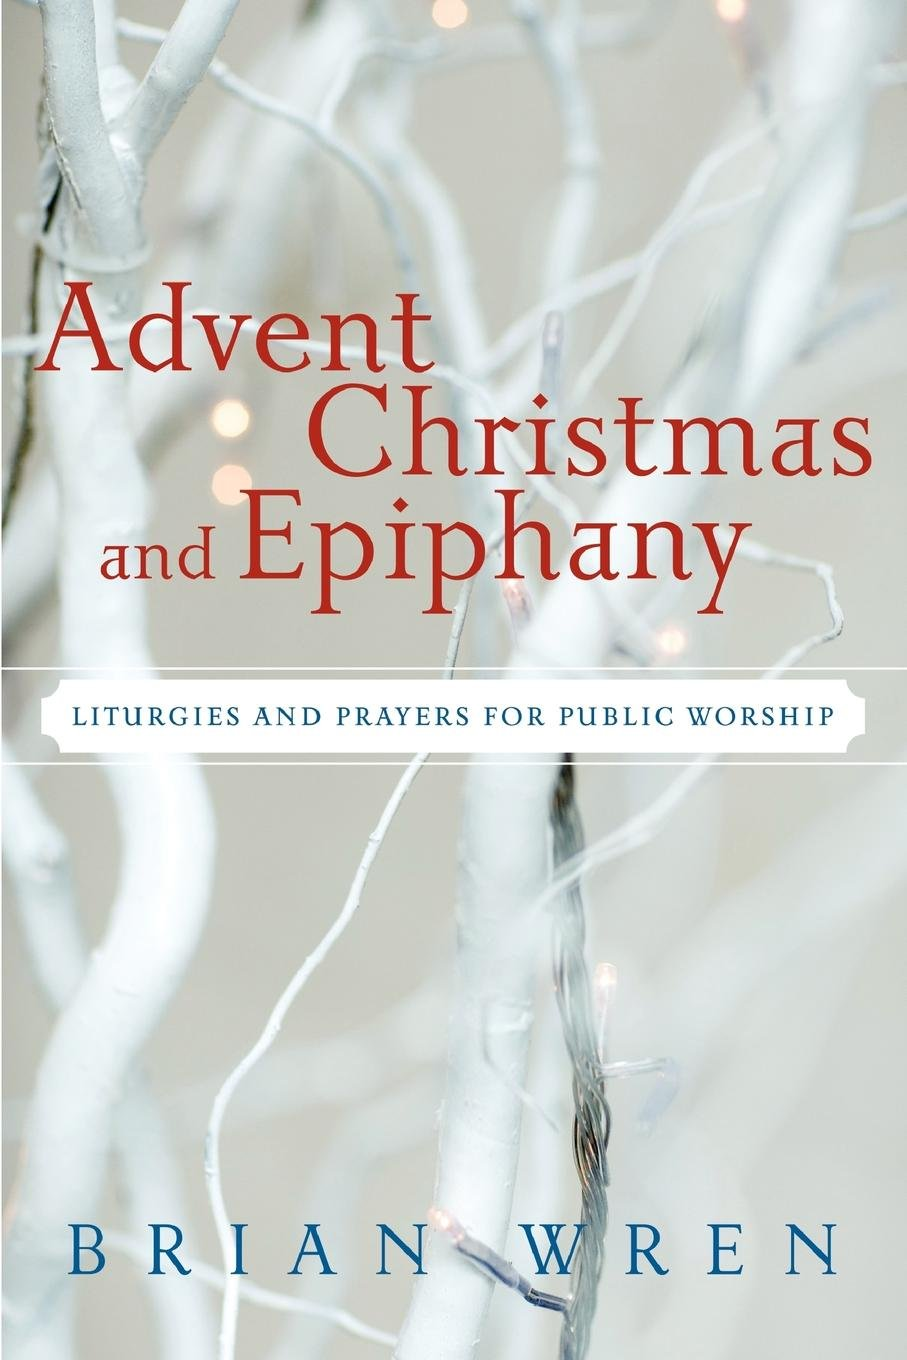 Advent, Christmas, and Epiphany: Liturgies and Prayers for Public Worship PDF